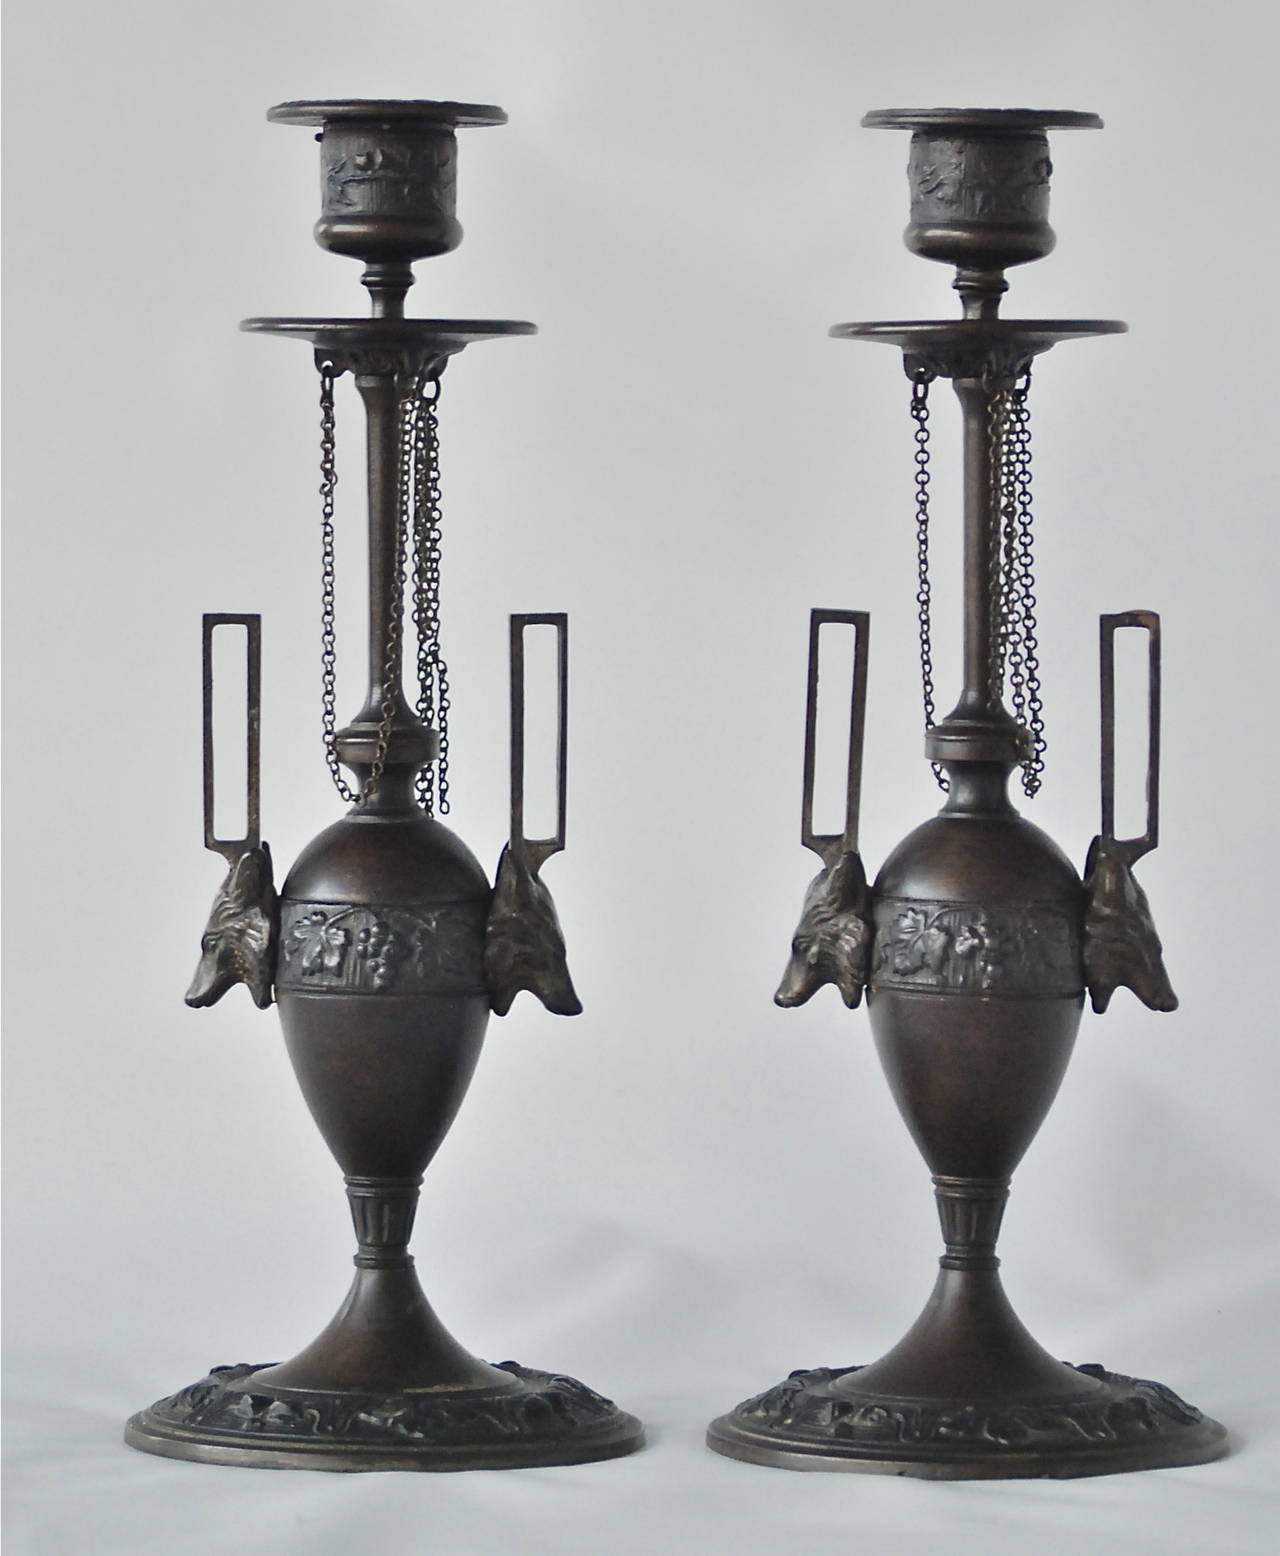 Pair of Candleholders by F. L. Vombach 2